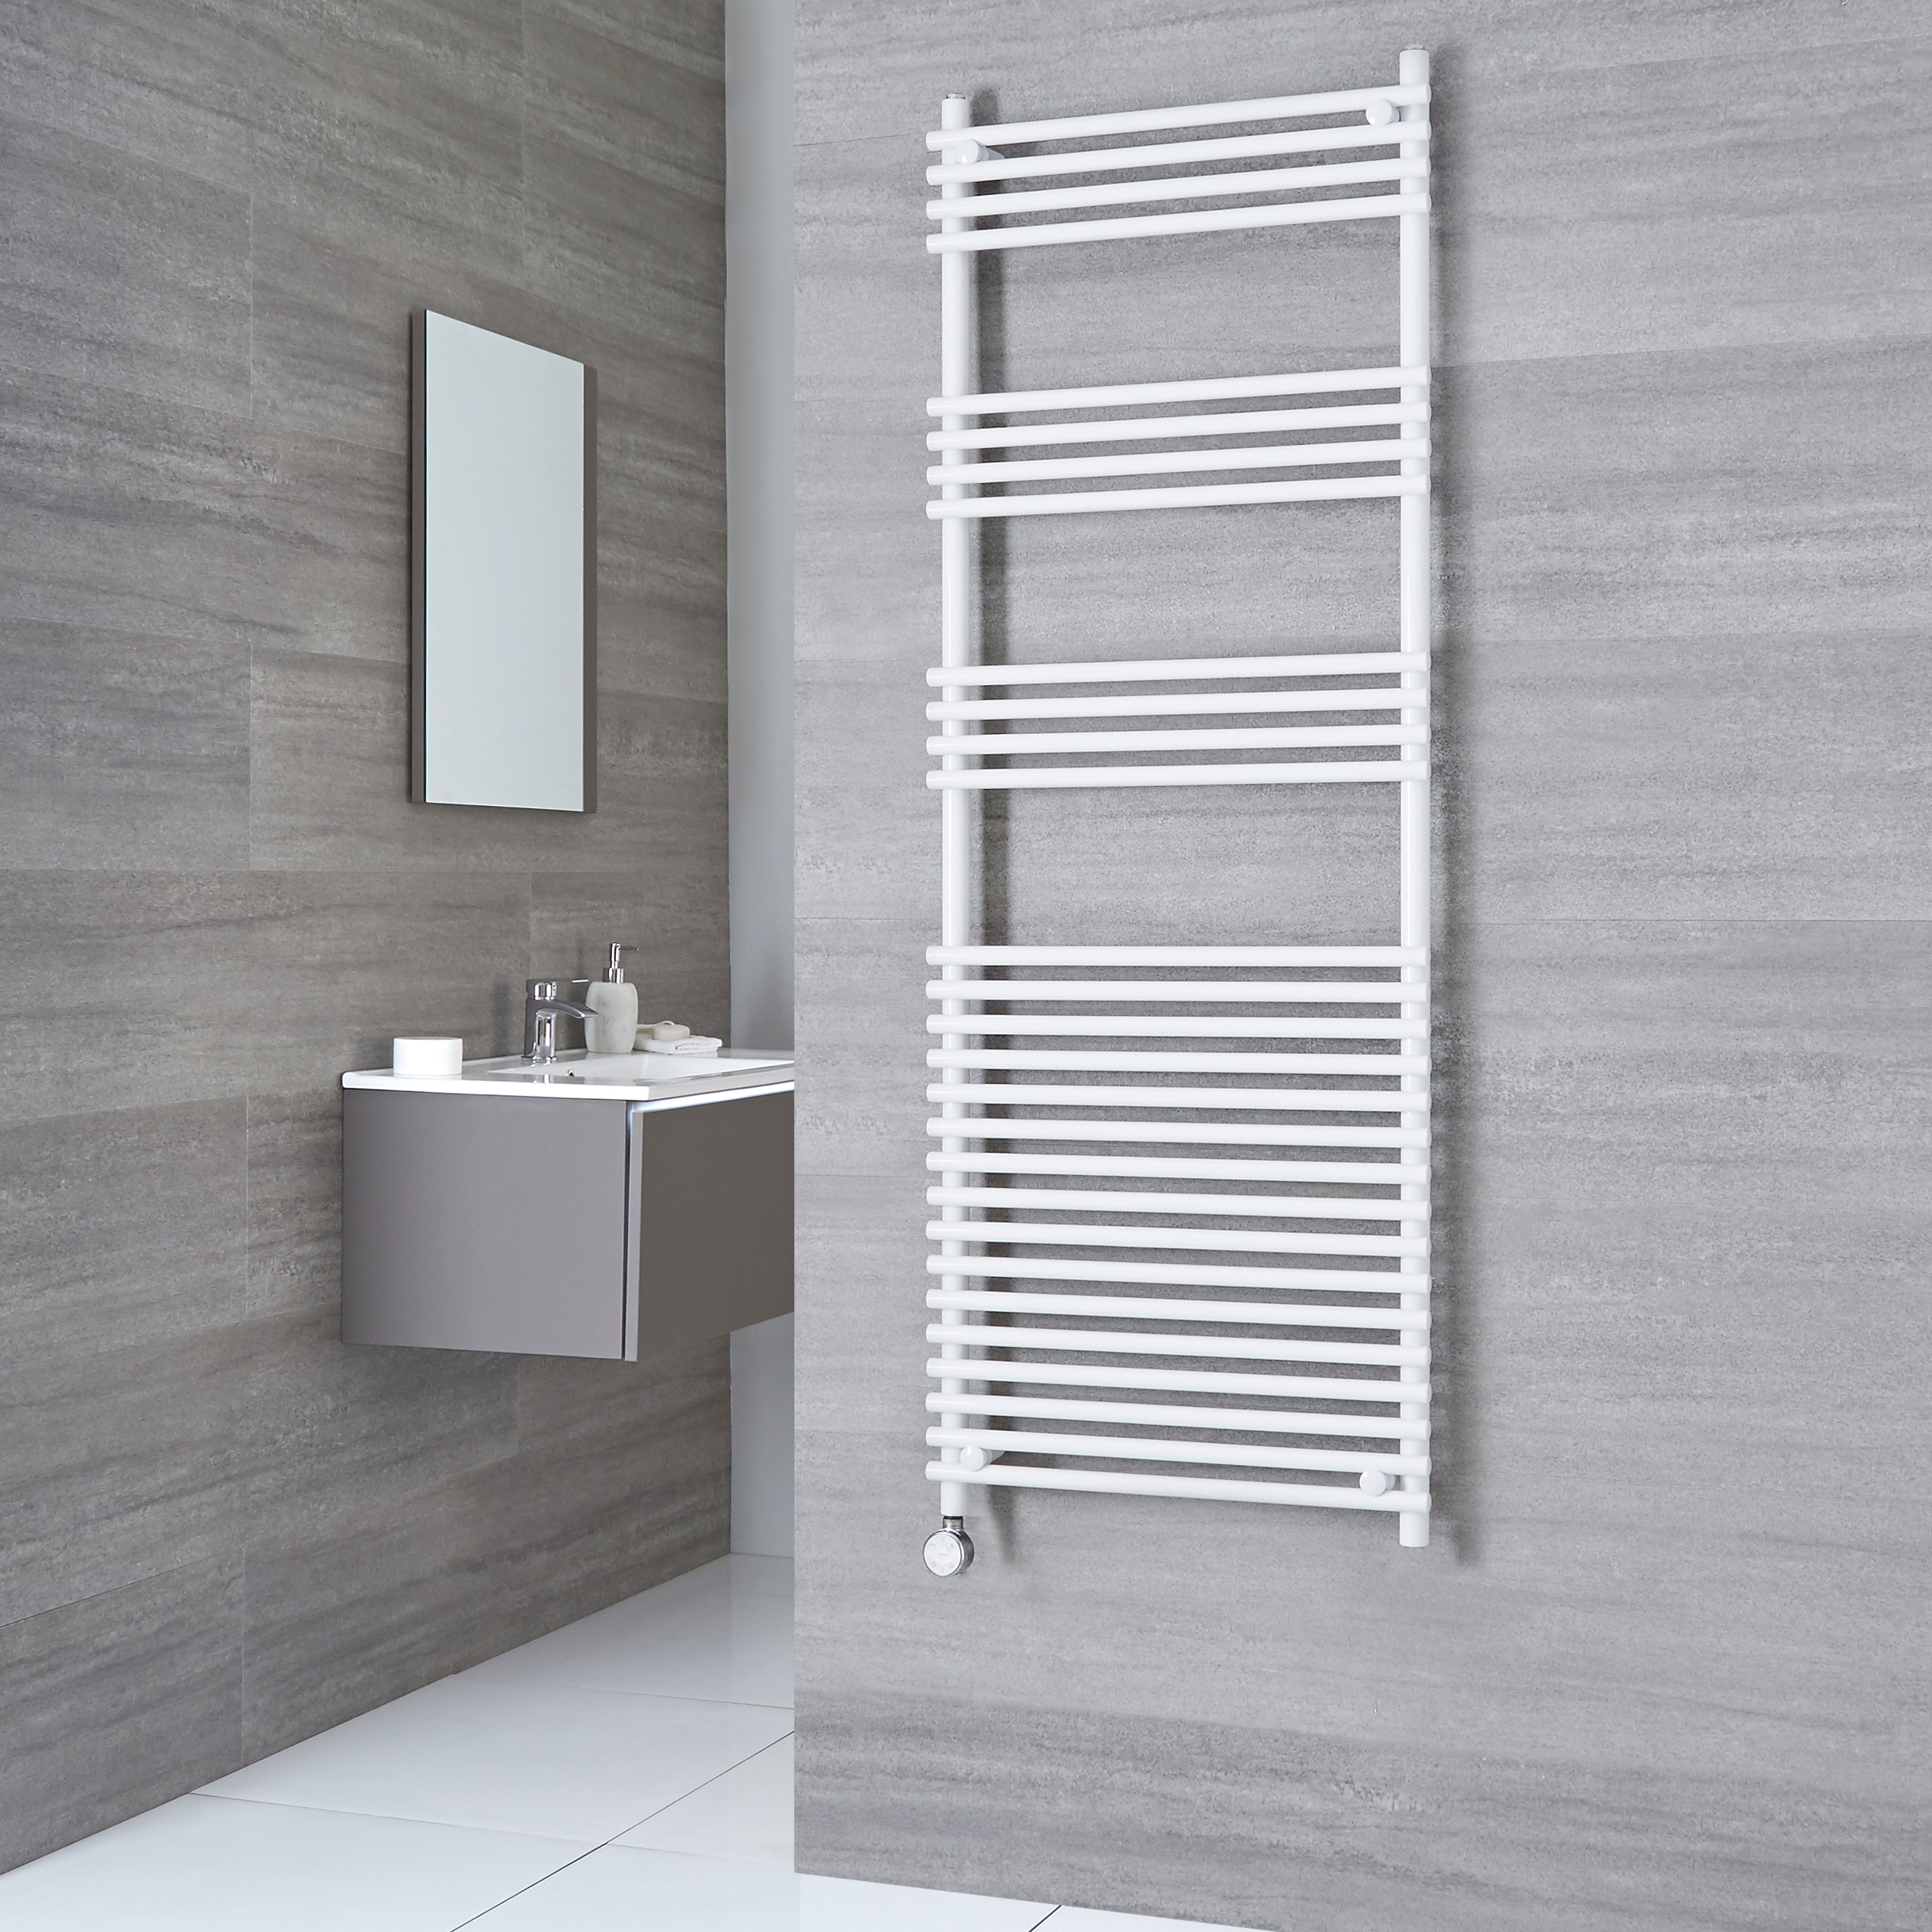 Kudox Harrogate Electric - White Flat Bar on Bar Heated Towel Rail - 1650mm x 600mm